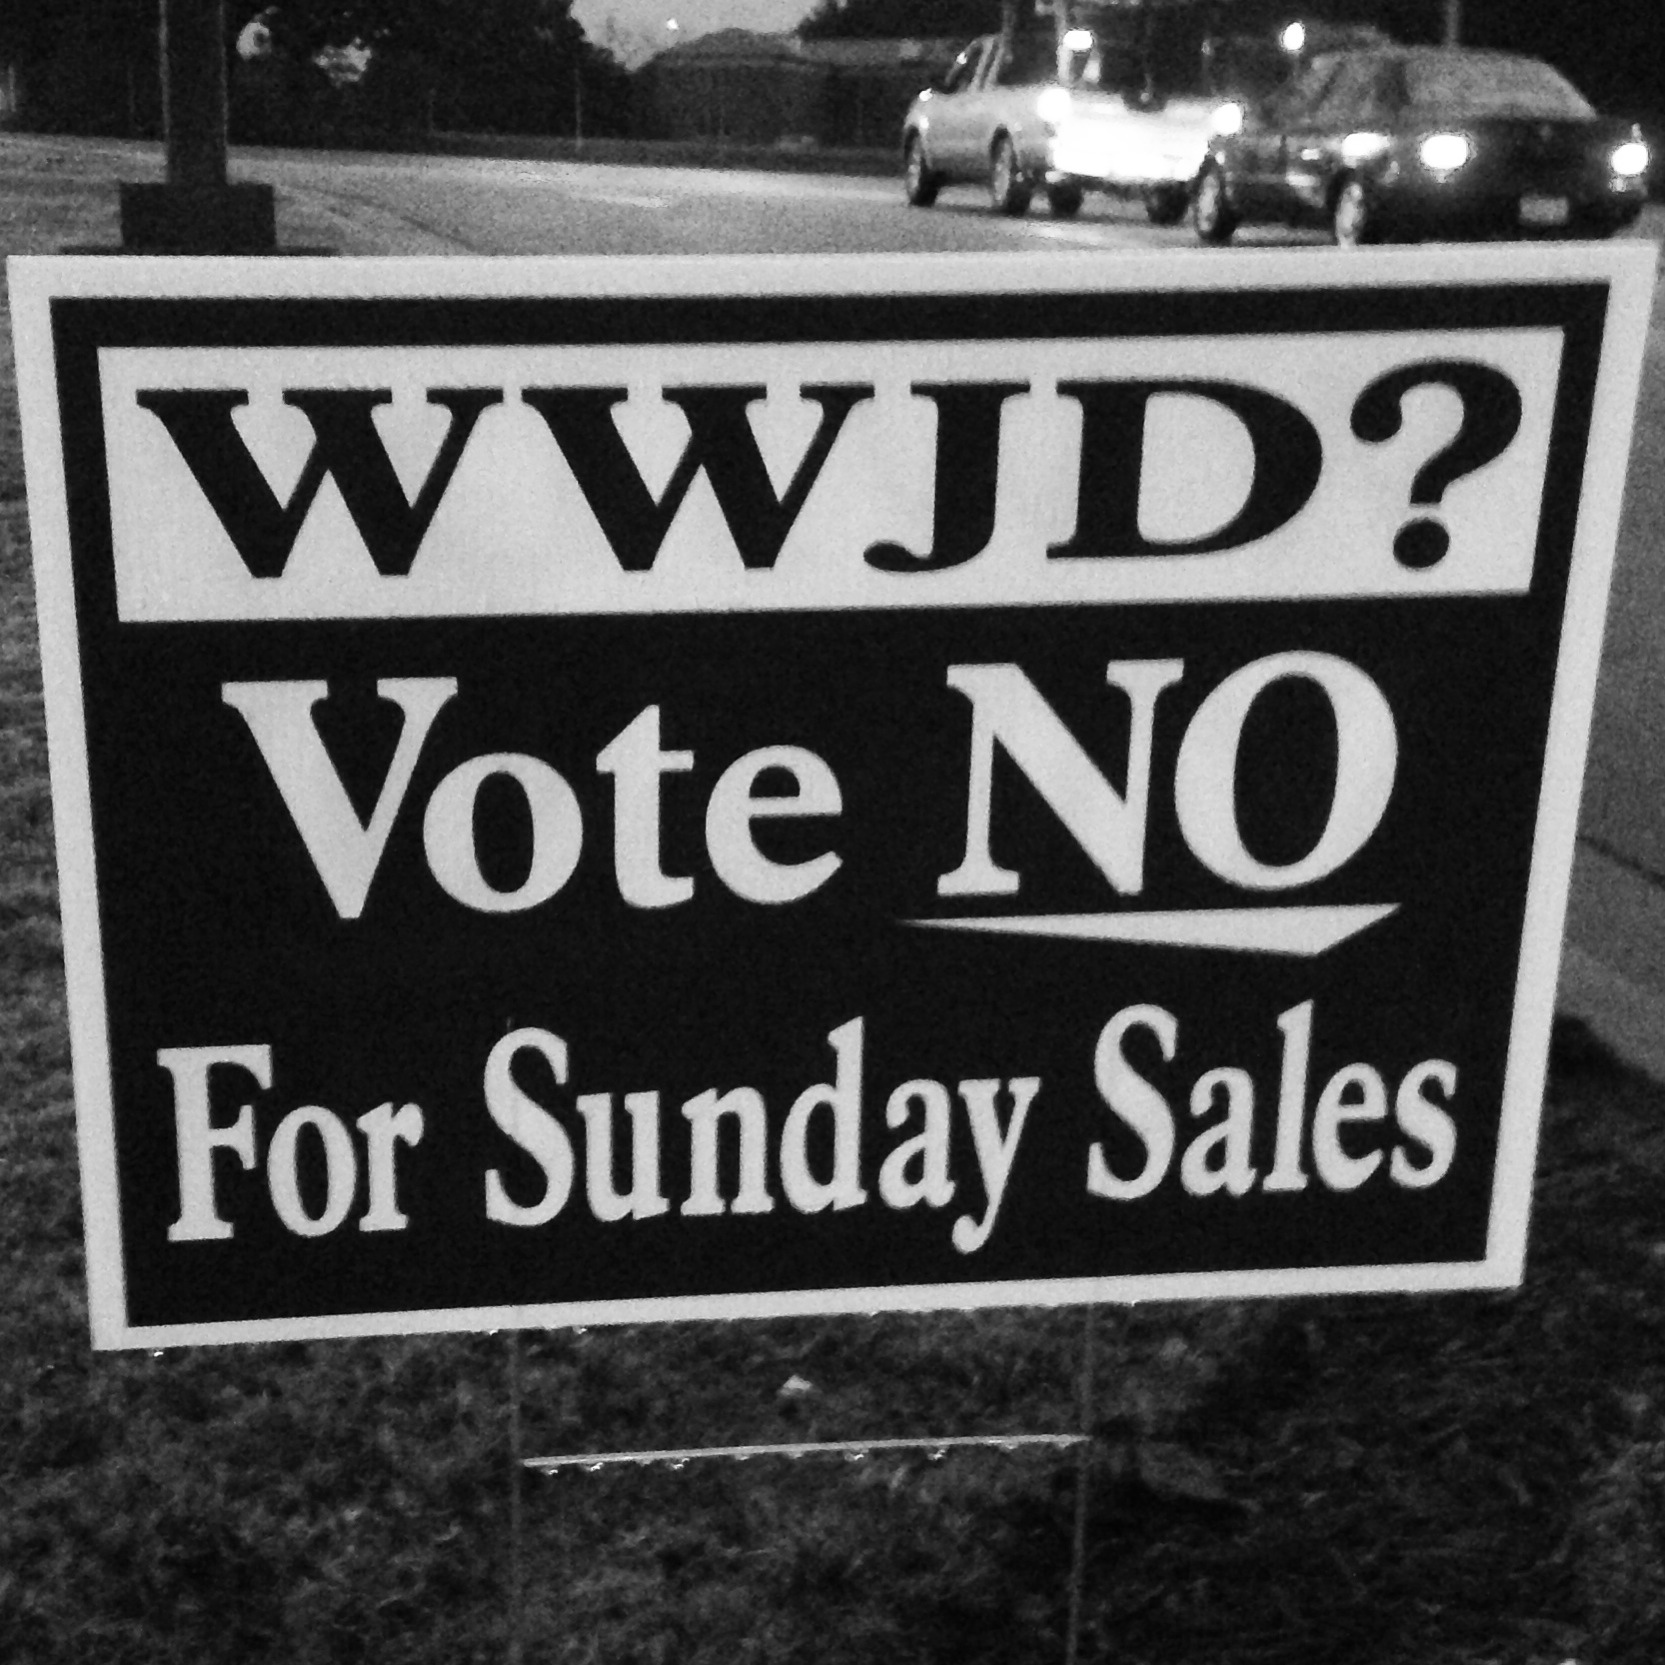 WWJD? Vote NO For Sunday Sales